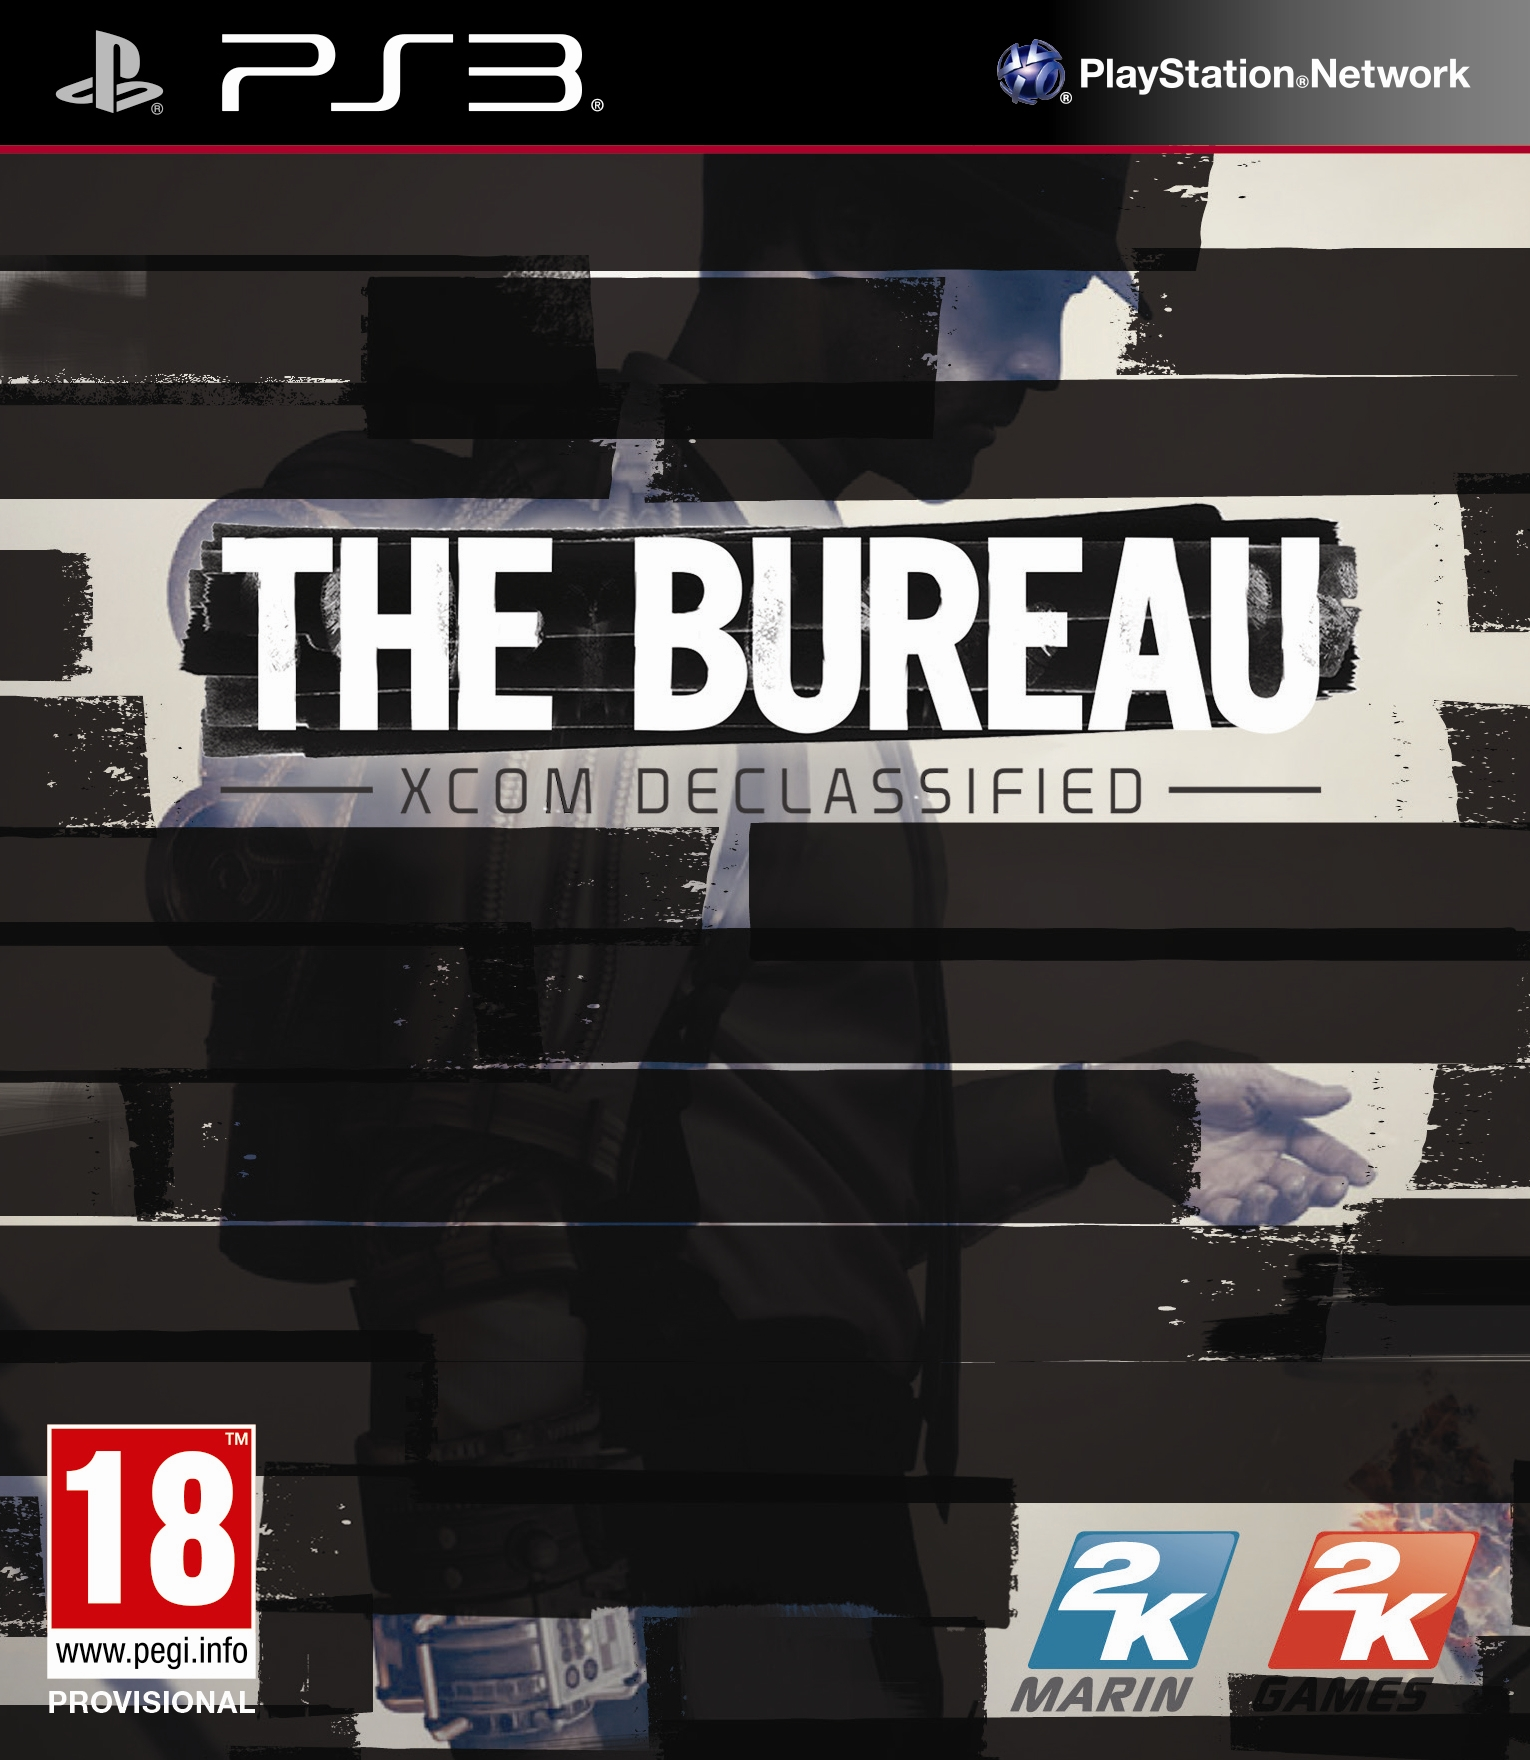 the bureau xcom declassified windows x360 ps3 game mod db. Black Bedroom Furniture Sets. Home Design Ideas